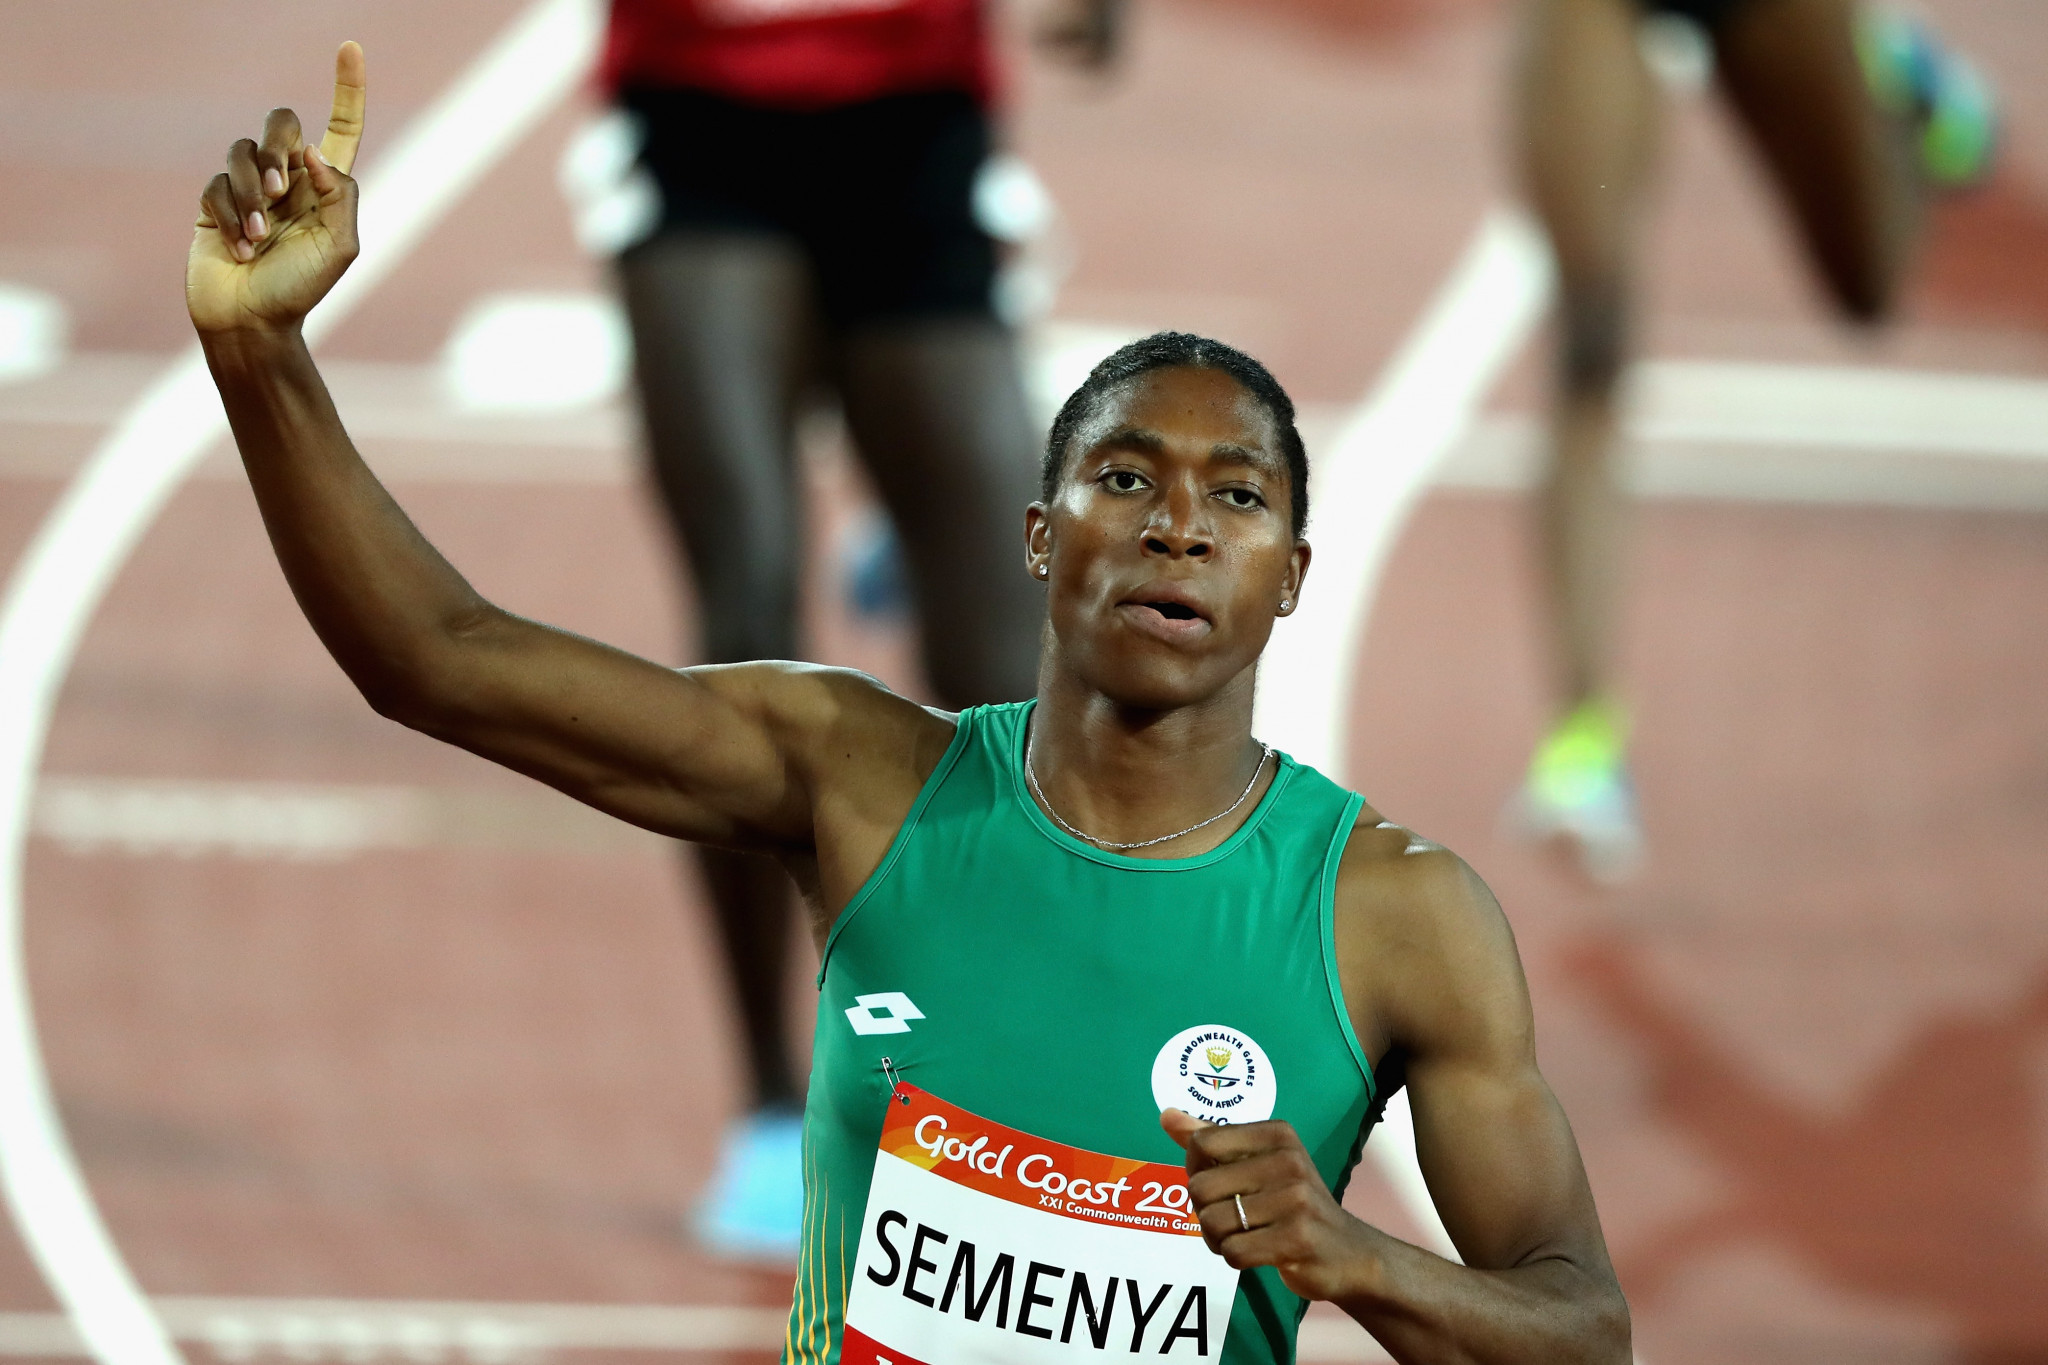 Caster Semenya launched her appeal saying she just wants to run